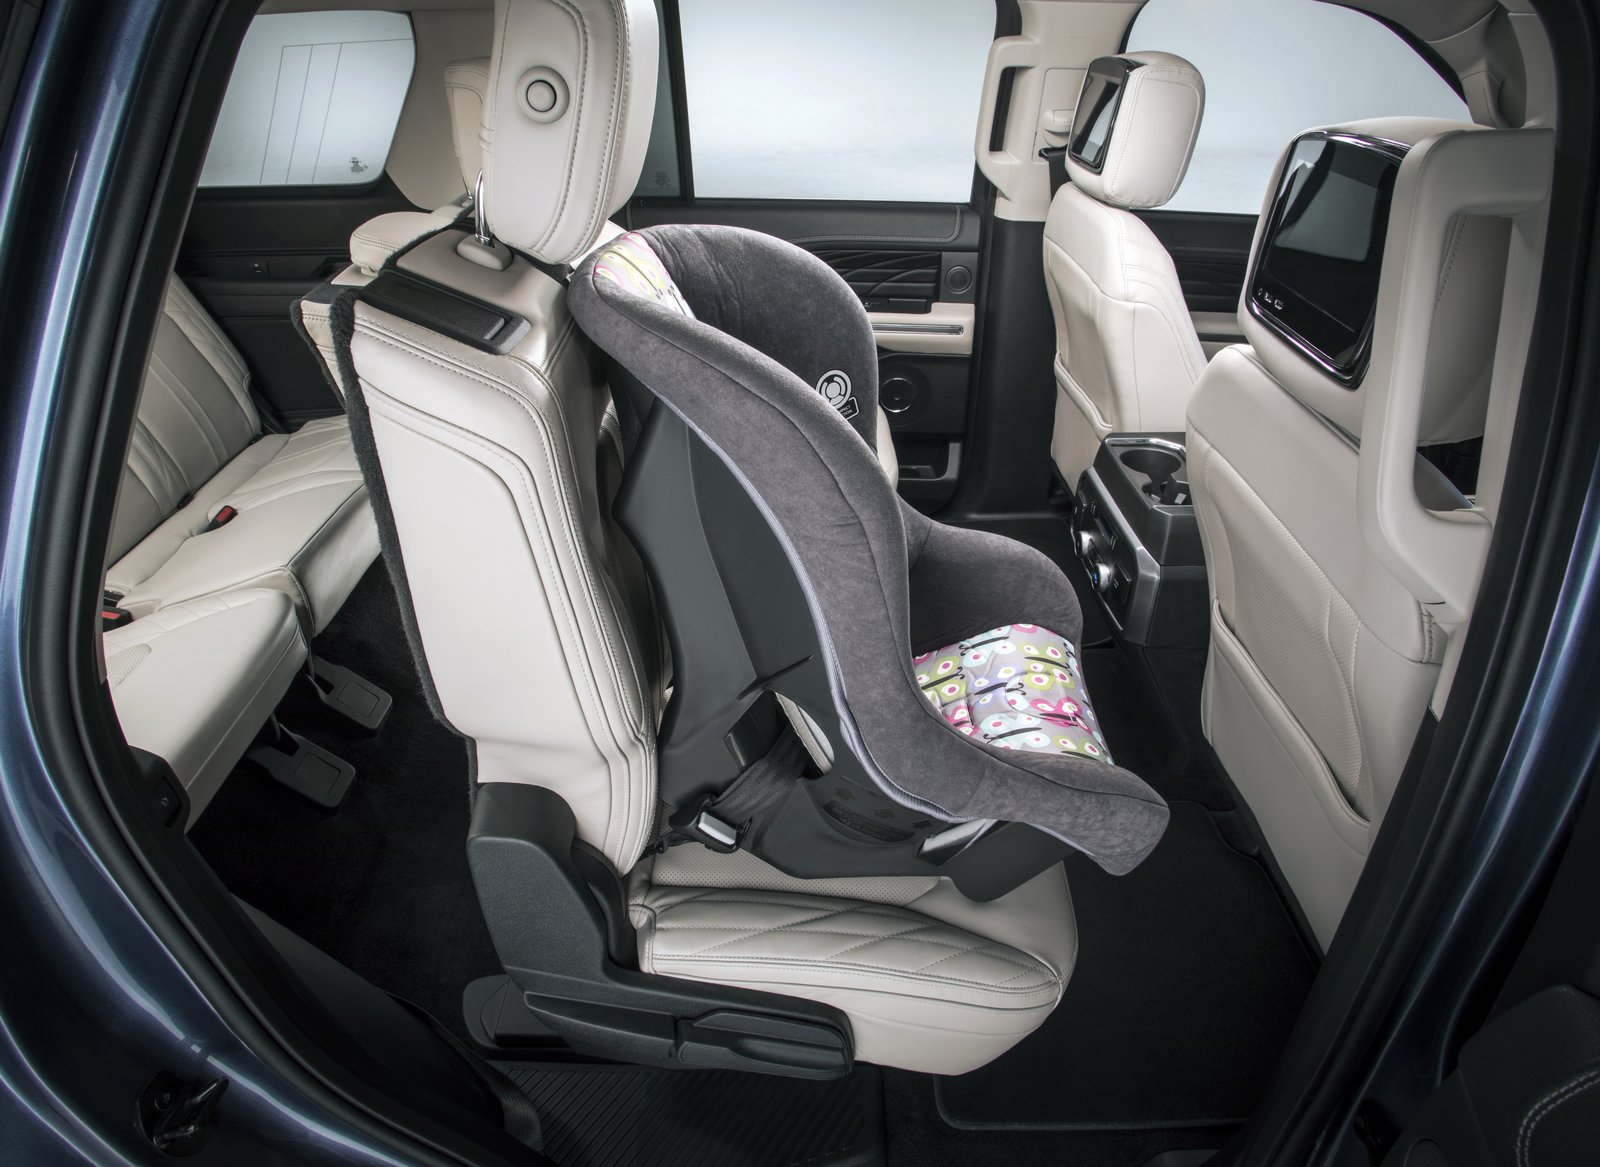 Second-row seats in the all-new Ford Expedition feature tip-and-slide architecture that enables passengers to access the third row without having to uninstall a child seat mounted in the second row.